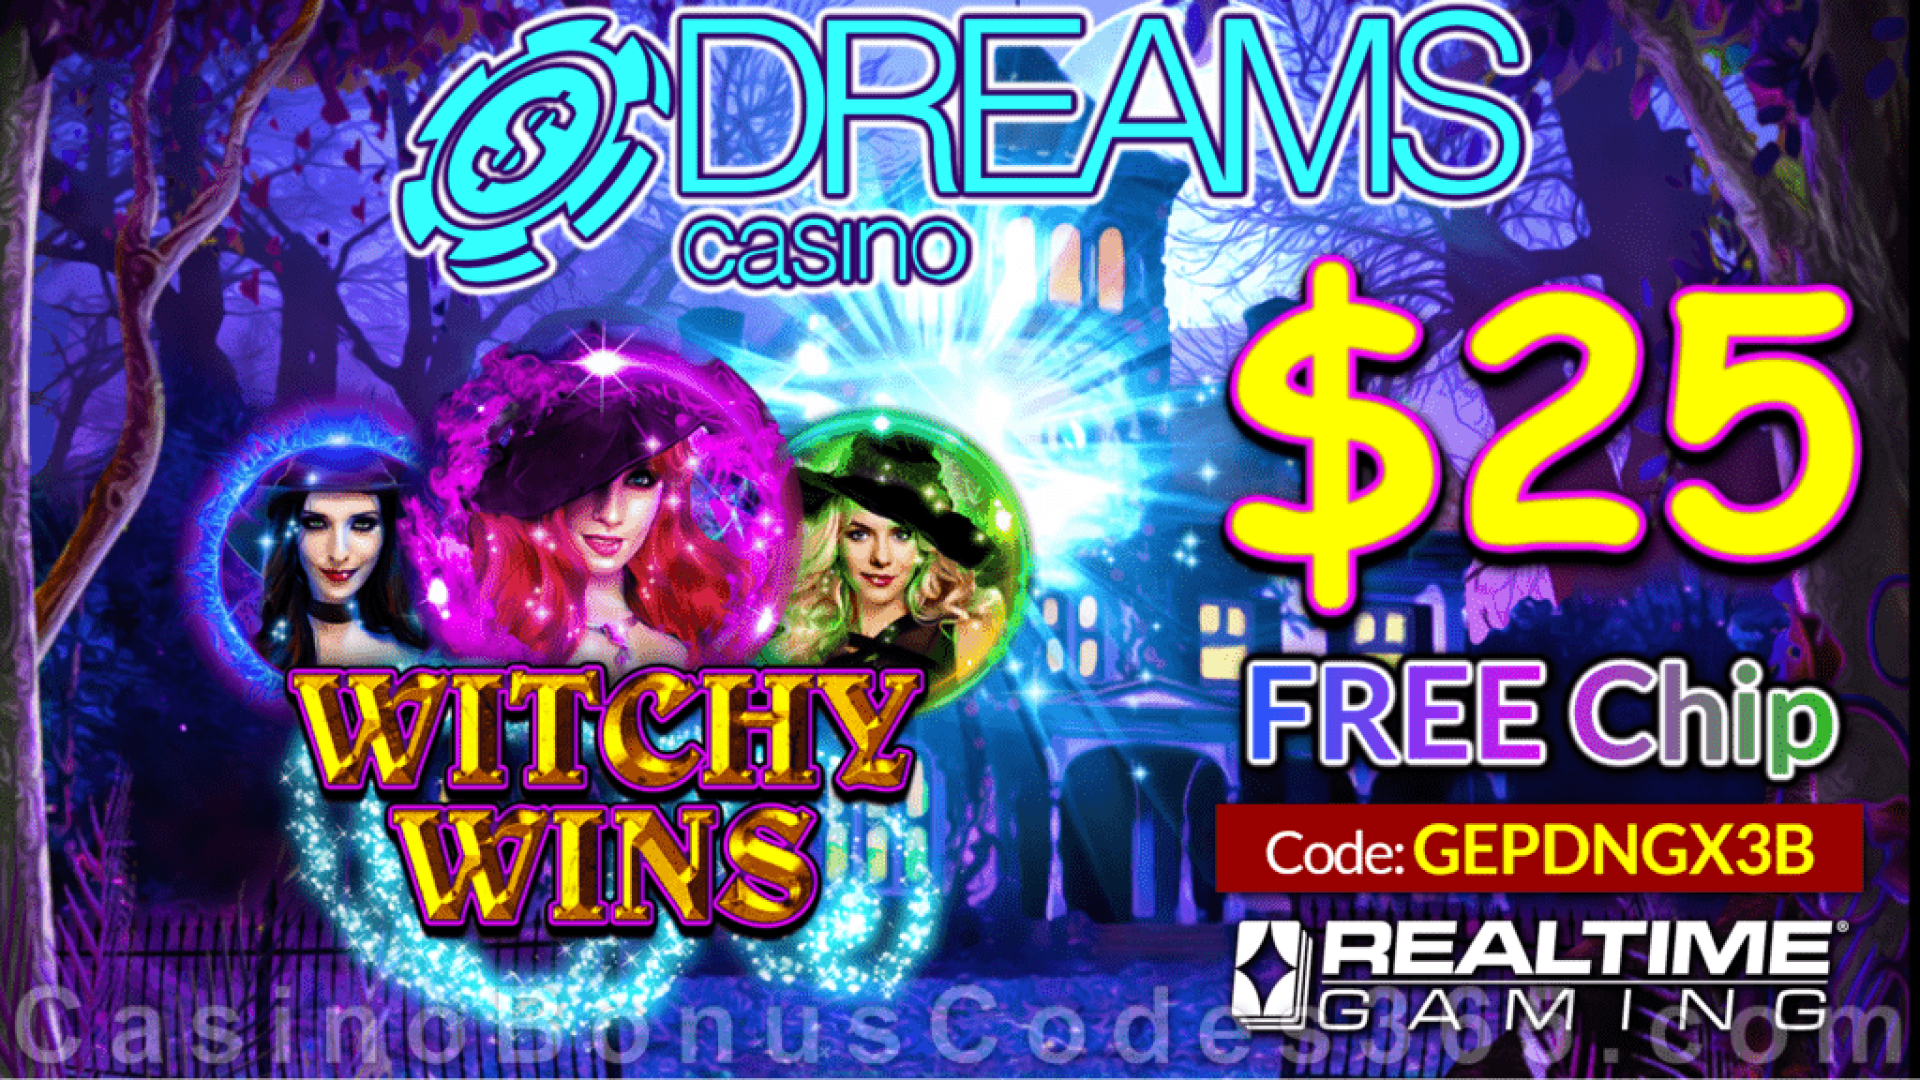 Dreams Casino $25 FREE Chip New RTG Game  Witchy Wins No Deposit Promo